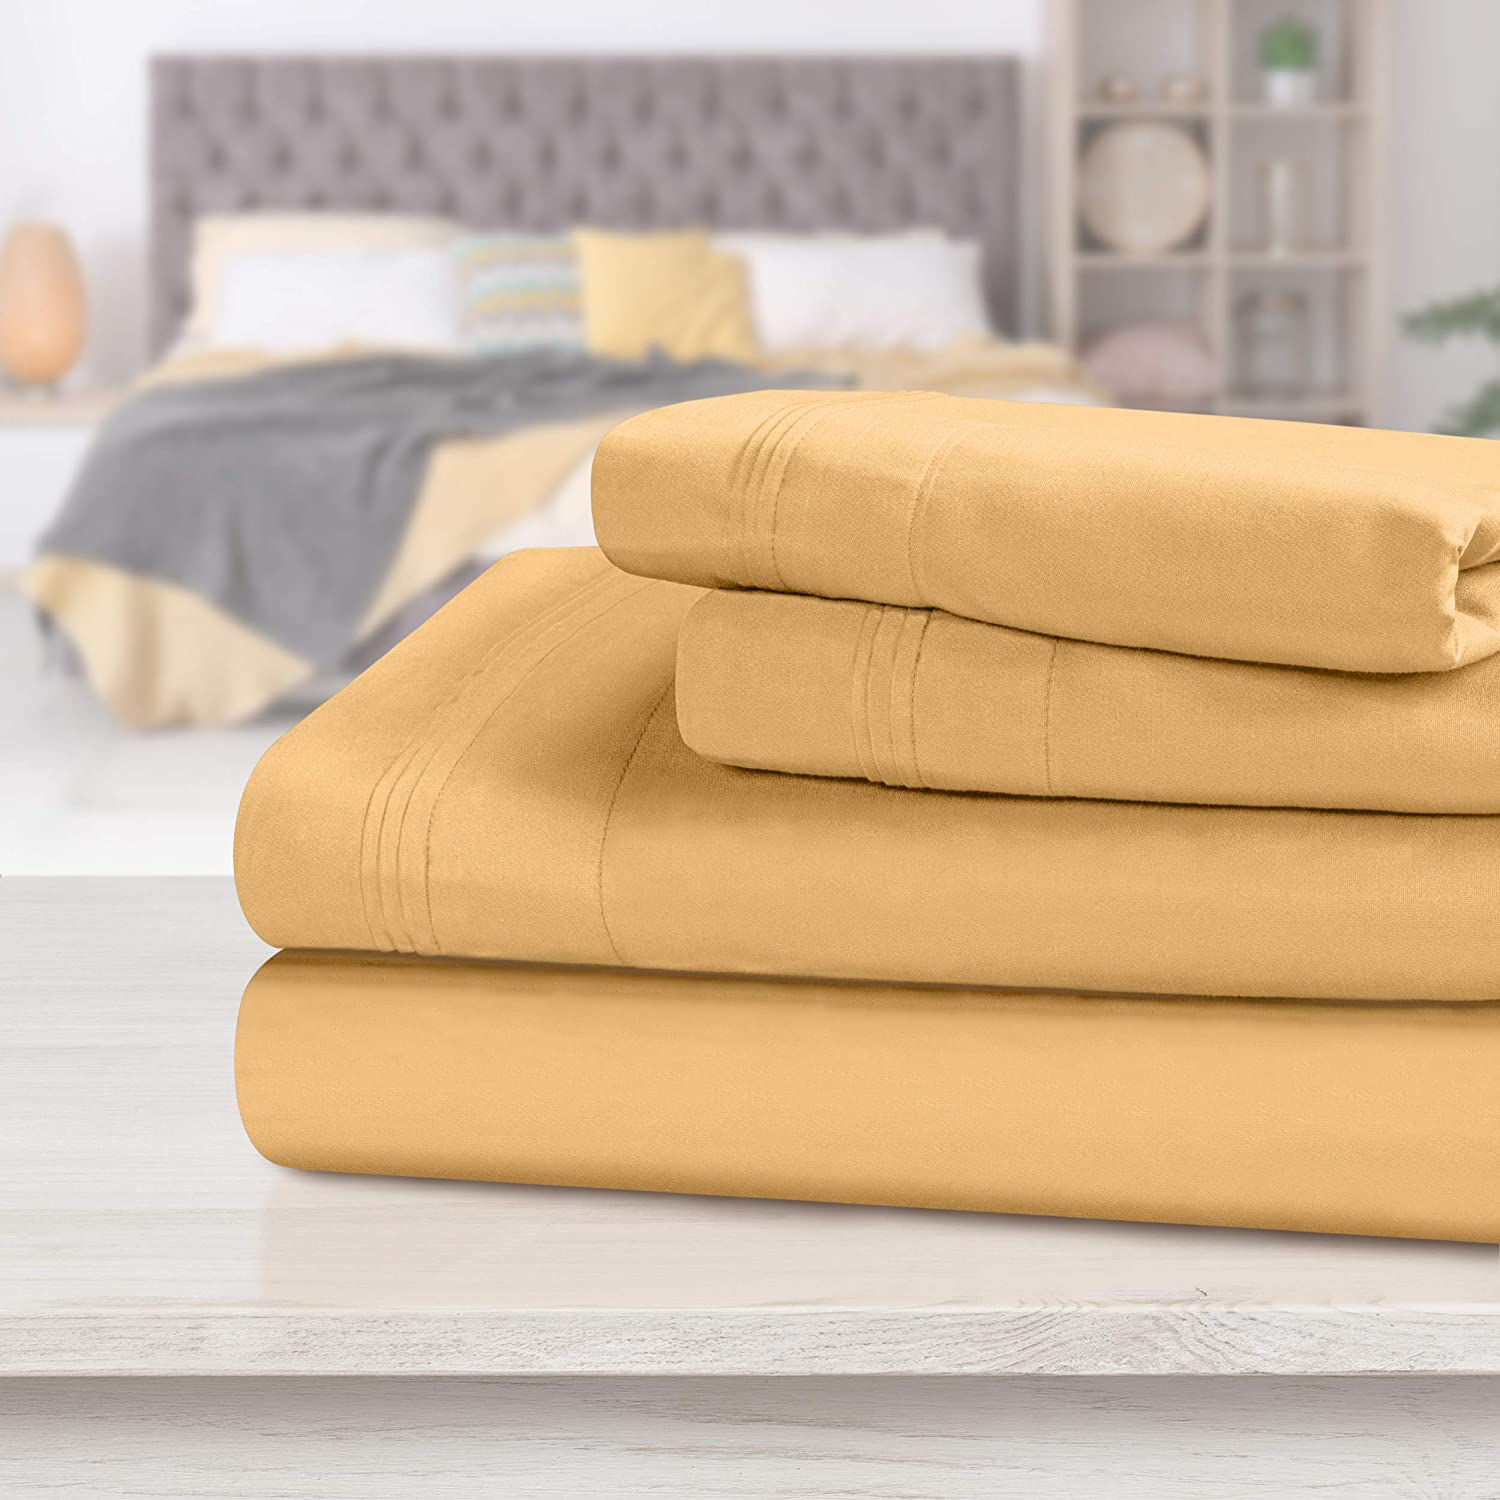 SUPERIOR Egyptian Cotton Solid Bed Sheet Set, King, Gold, 4-Pieces